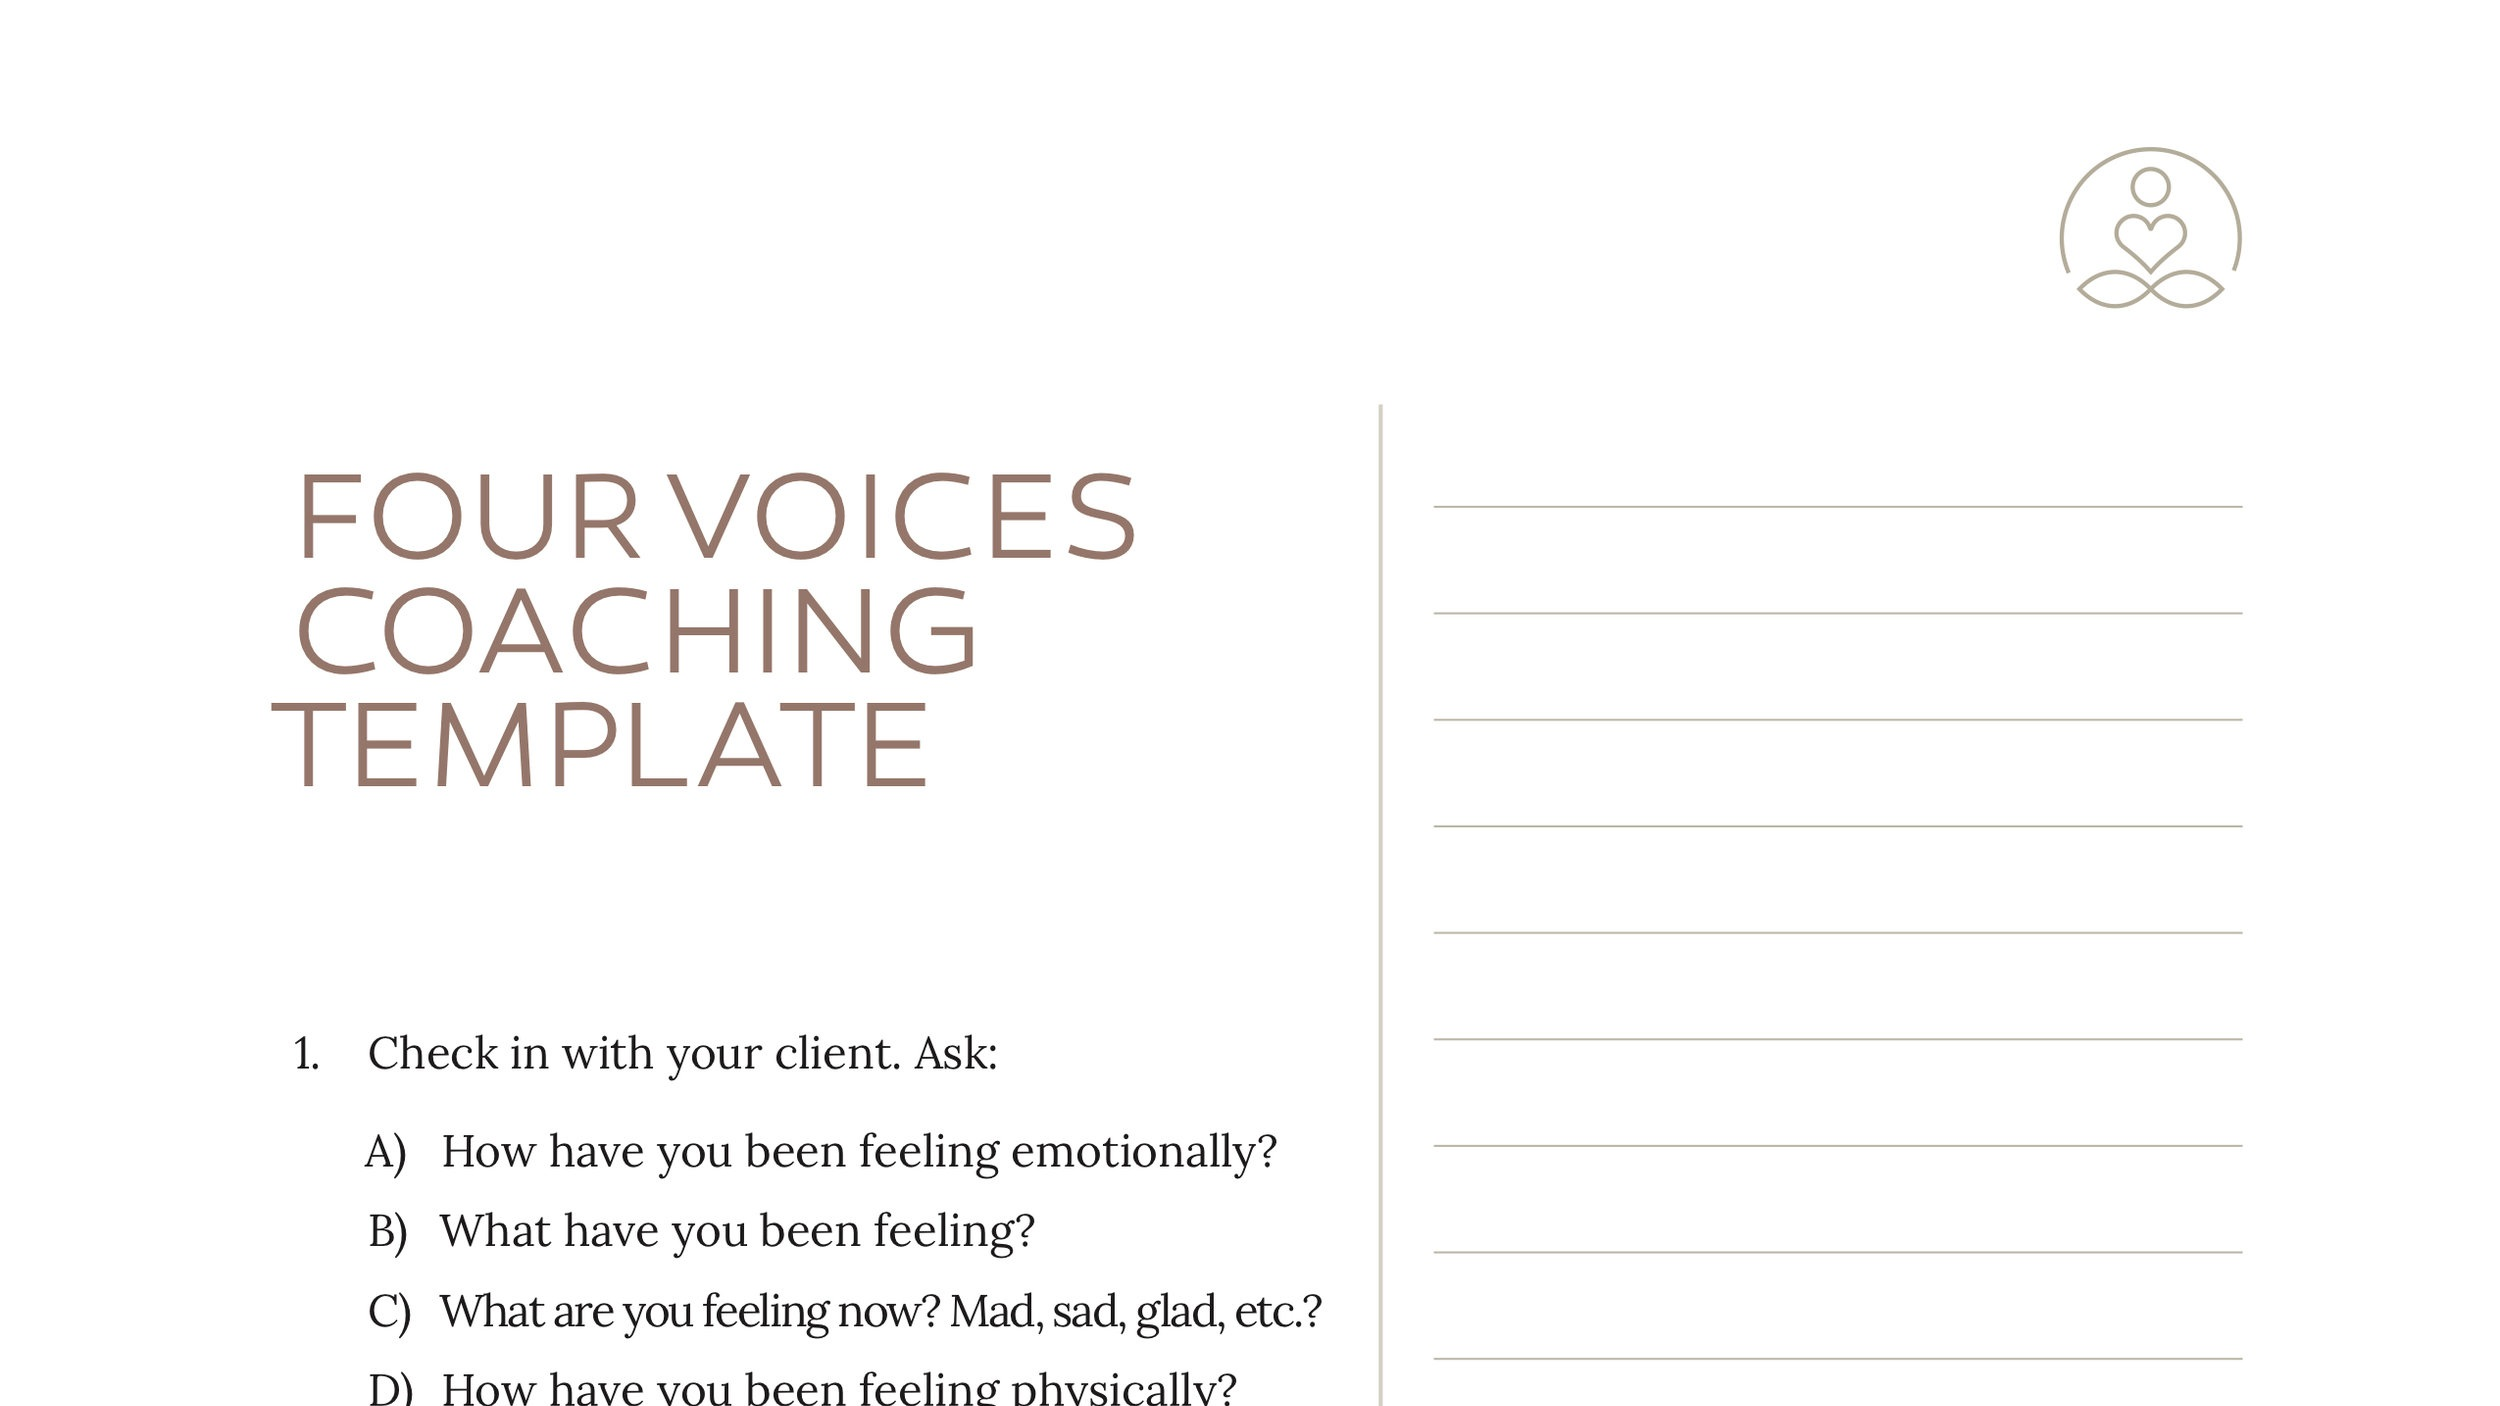 Four+Voices+Coaching+Template.jpg